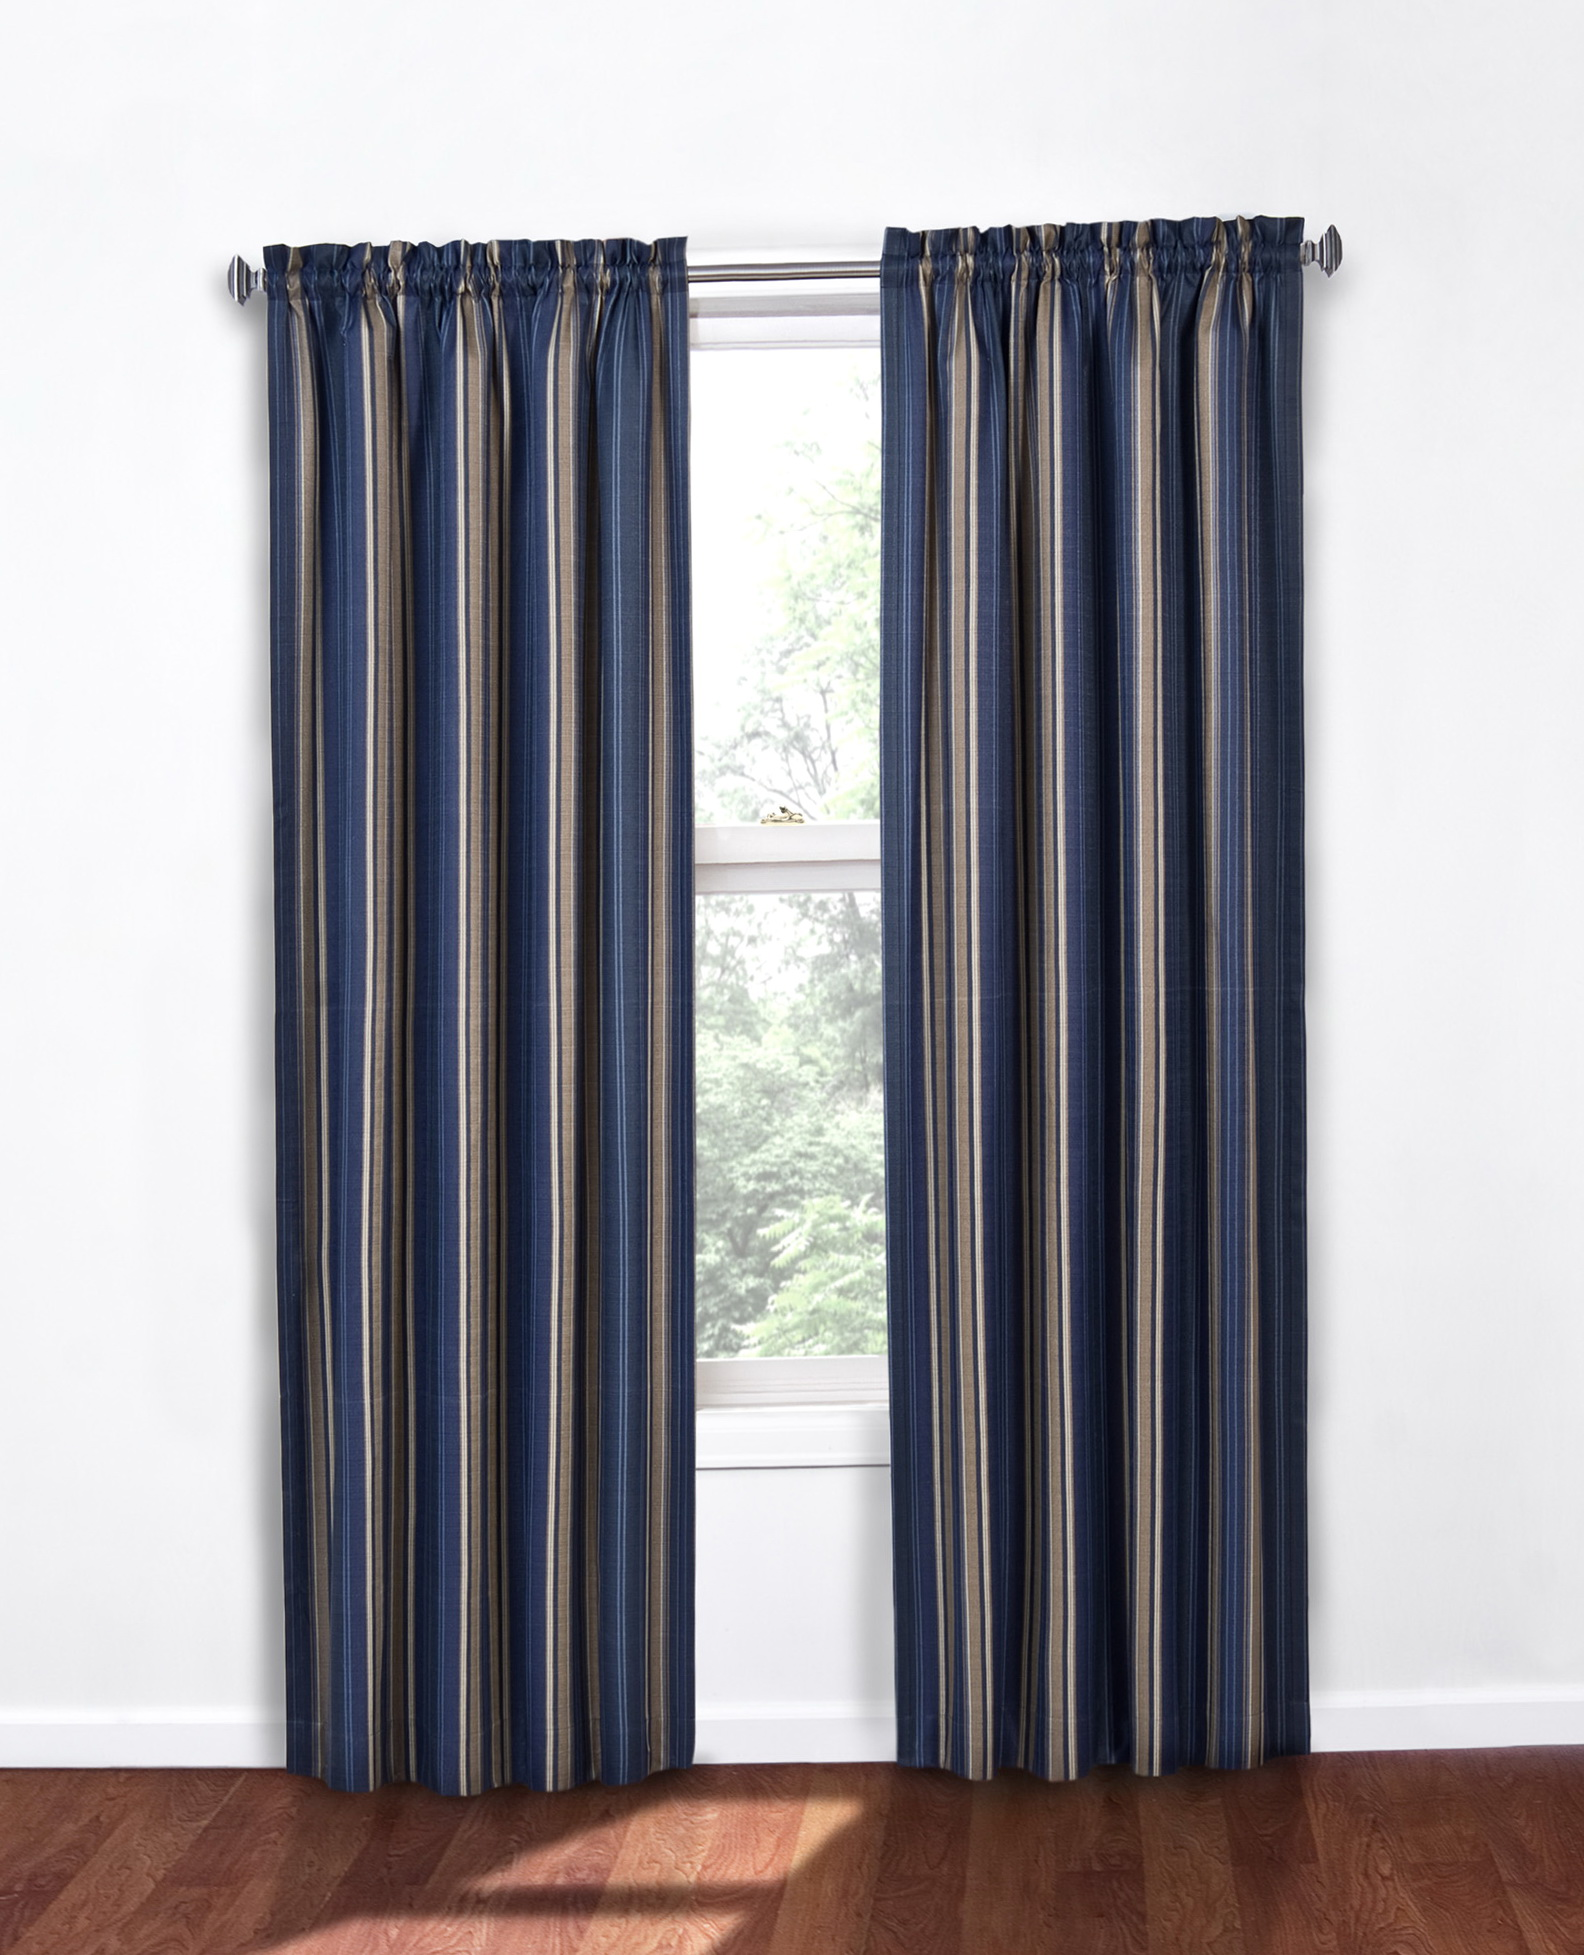 Blackout Window Curtains Walmart Home Design Ideas